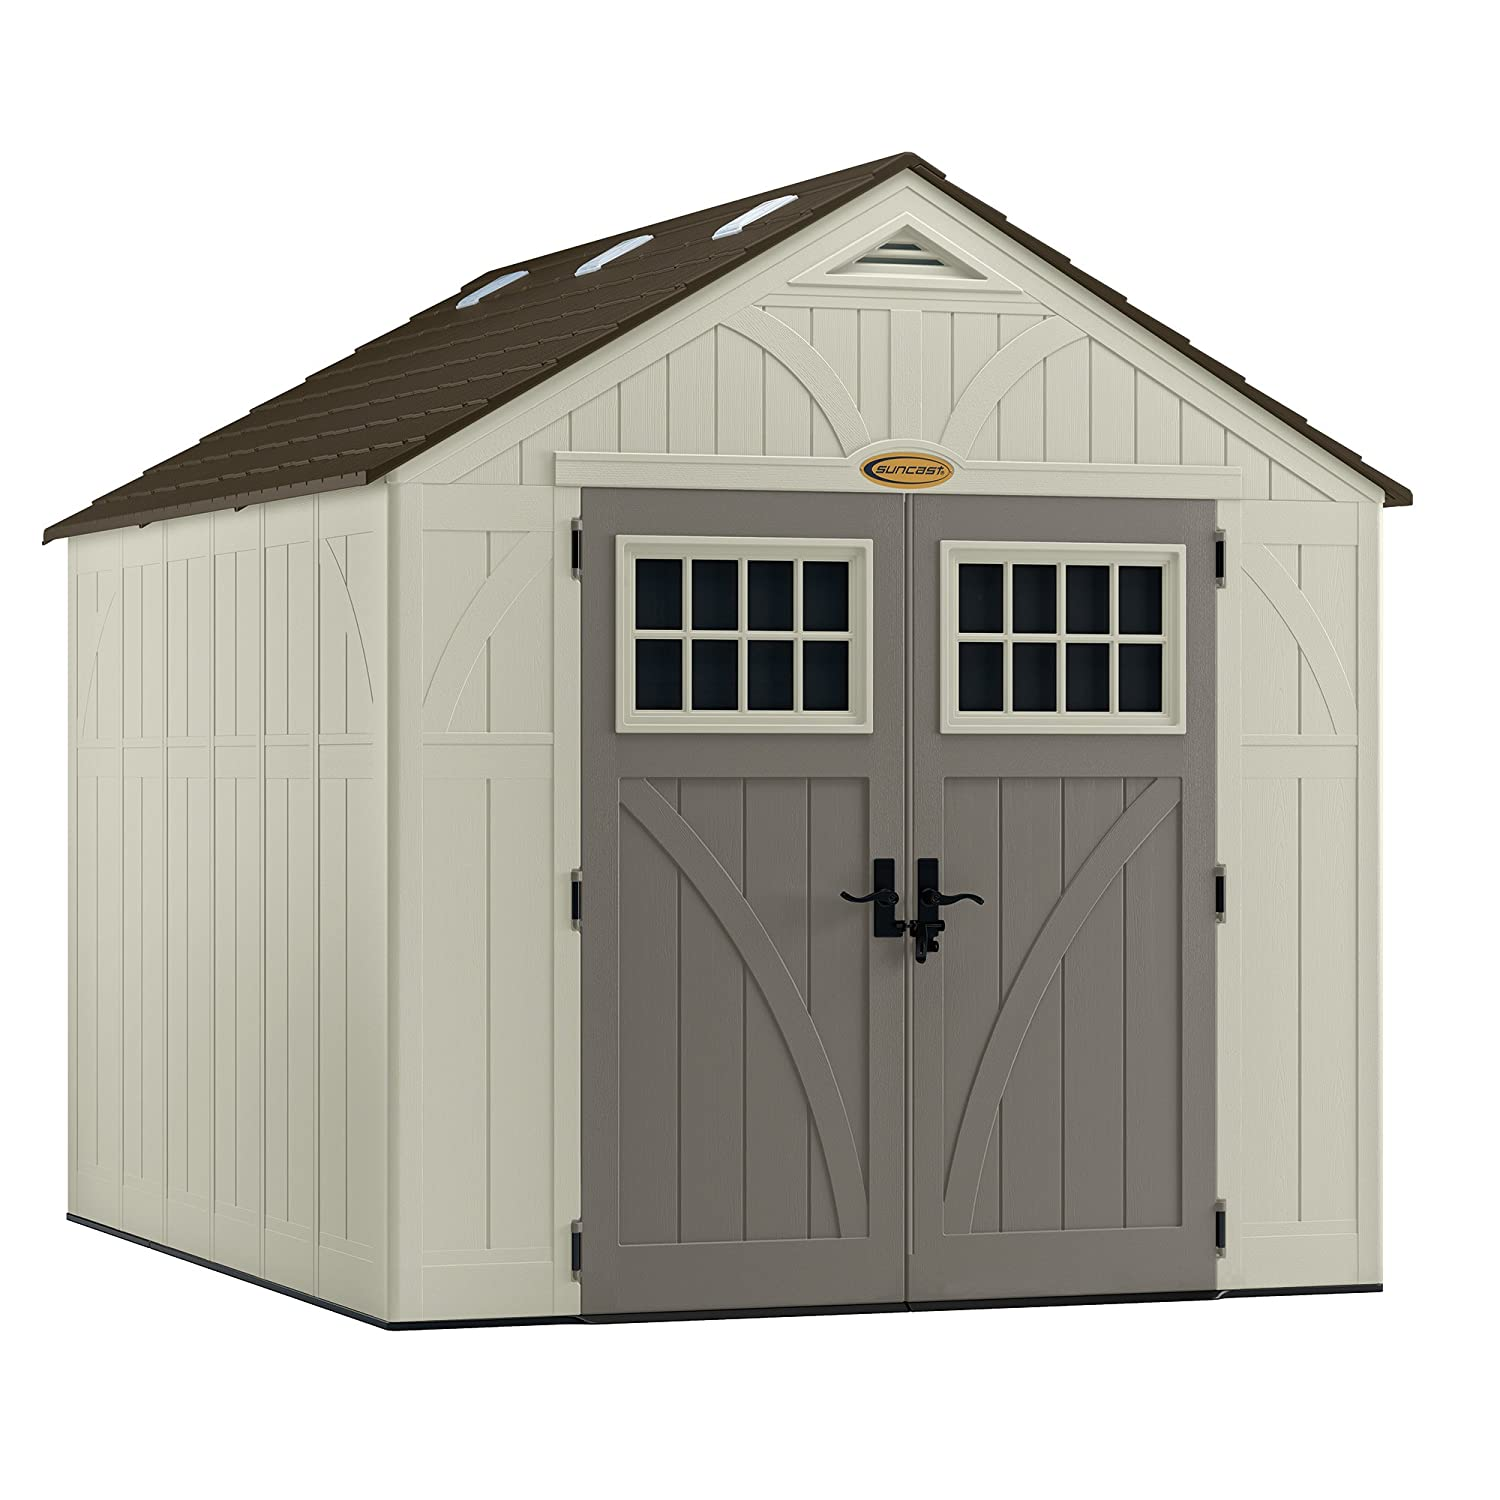 outdoor sale for storage cheap shedtdoor kits spurinteractive shed backyard full com sheds used